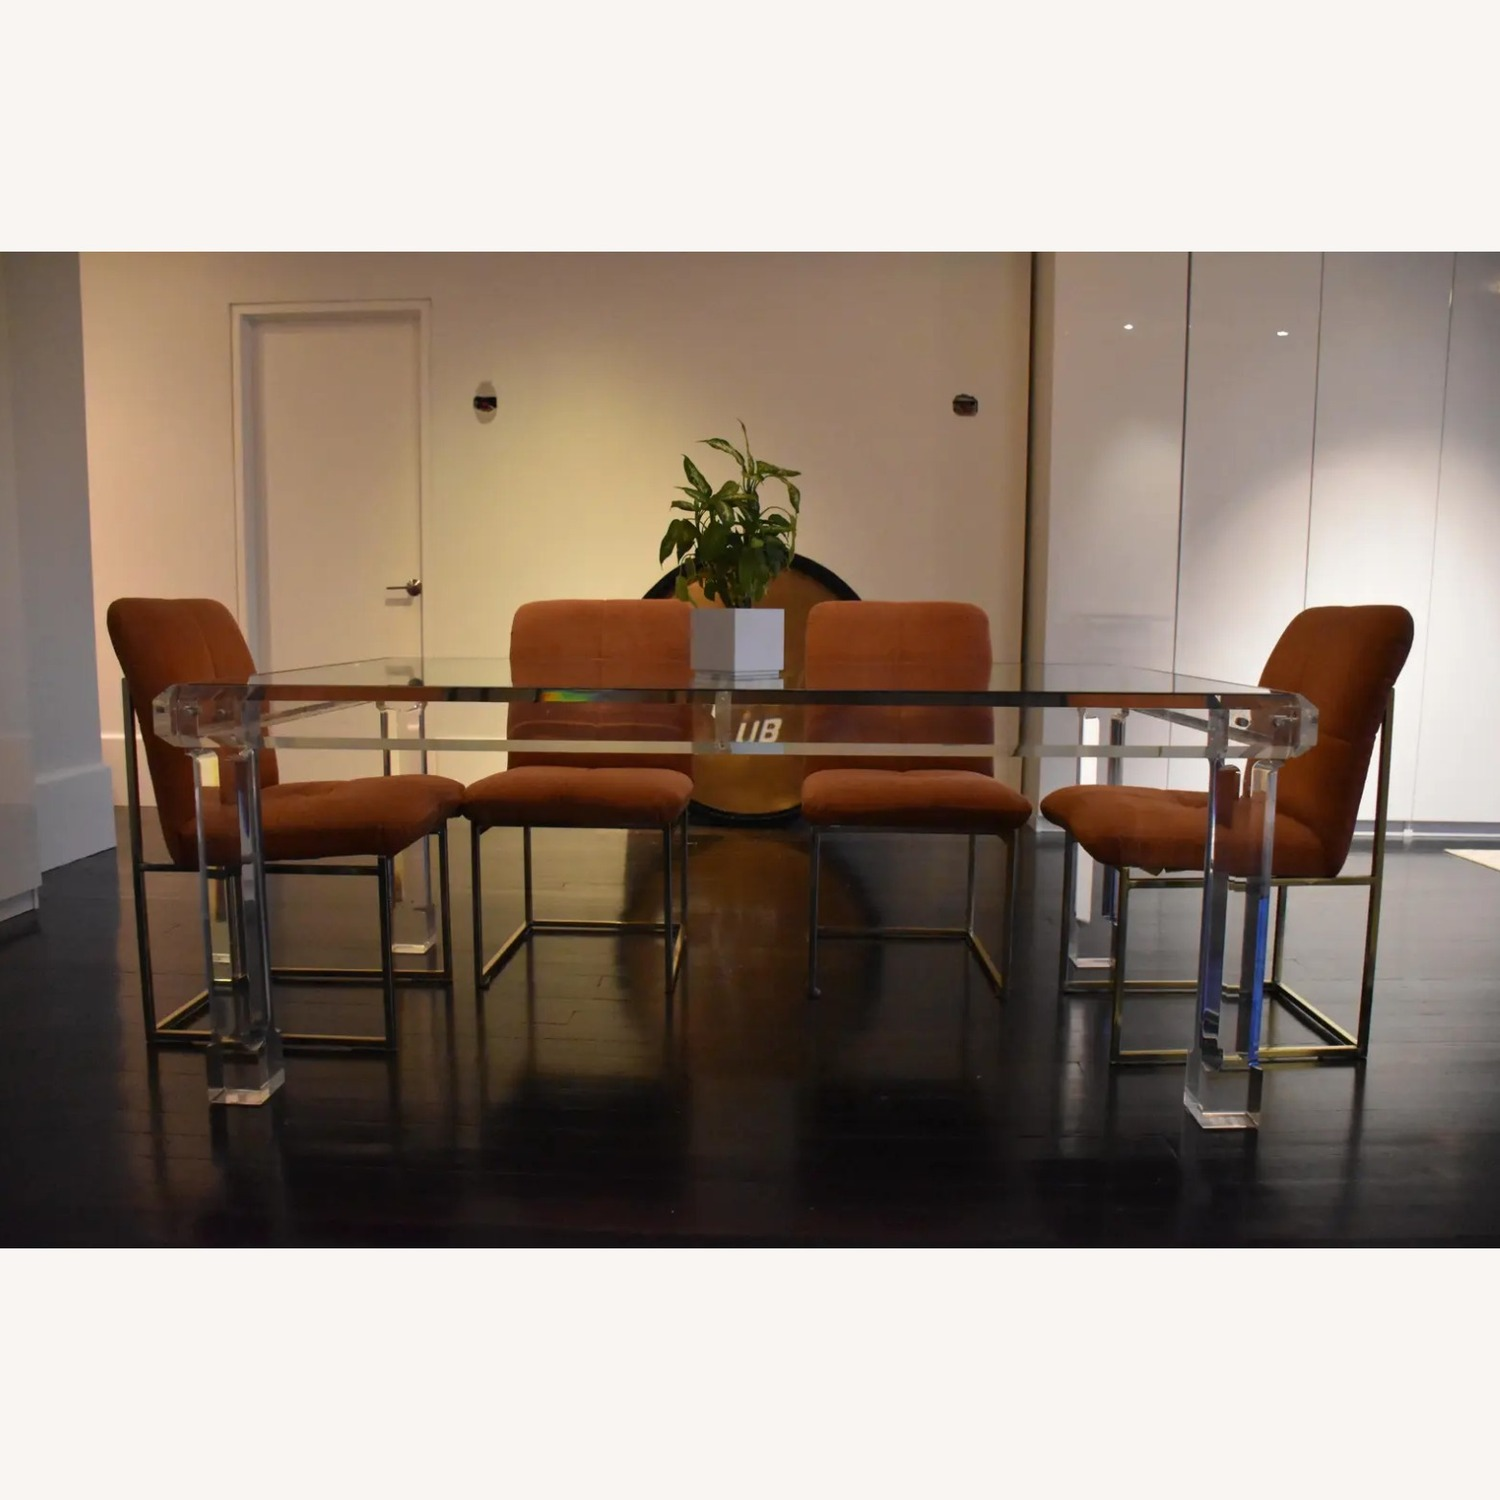 1970s Glass & Lucite Dining Room Table - image-2